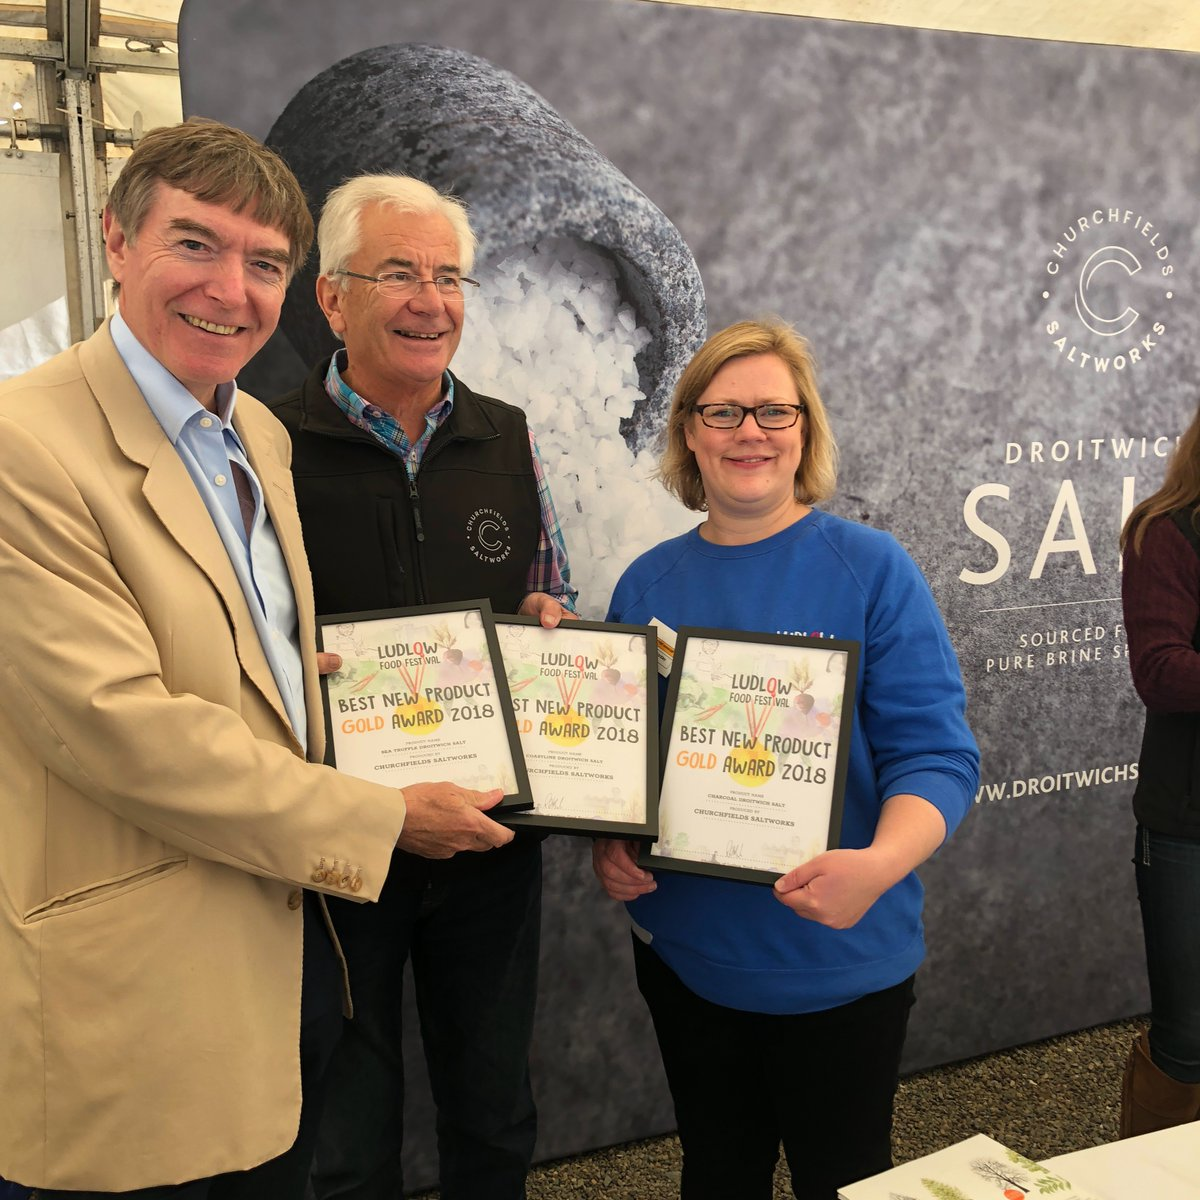 Ludlow Food Festival Awards for Droitwich Salt